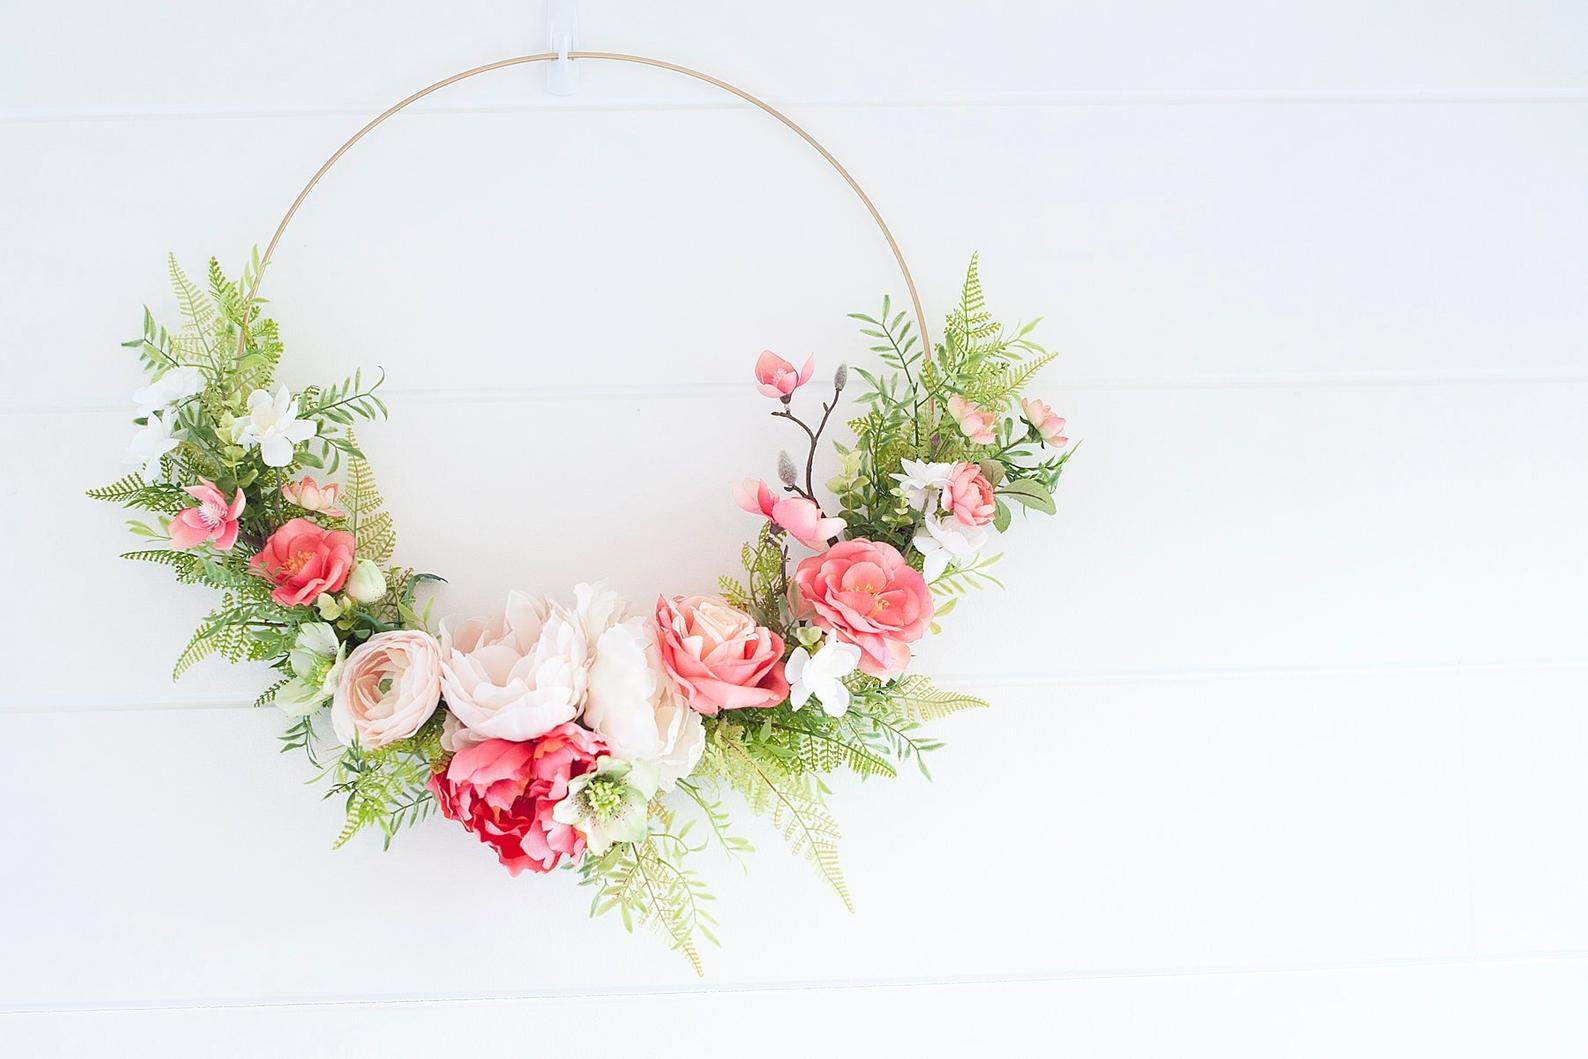 Modern LUX Coral & Blush Bloom Wreath Hoop By Mod Sugar Design